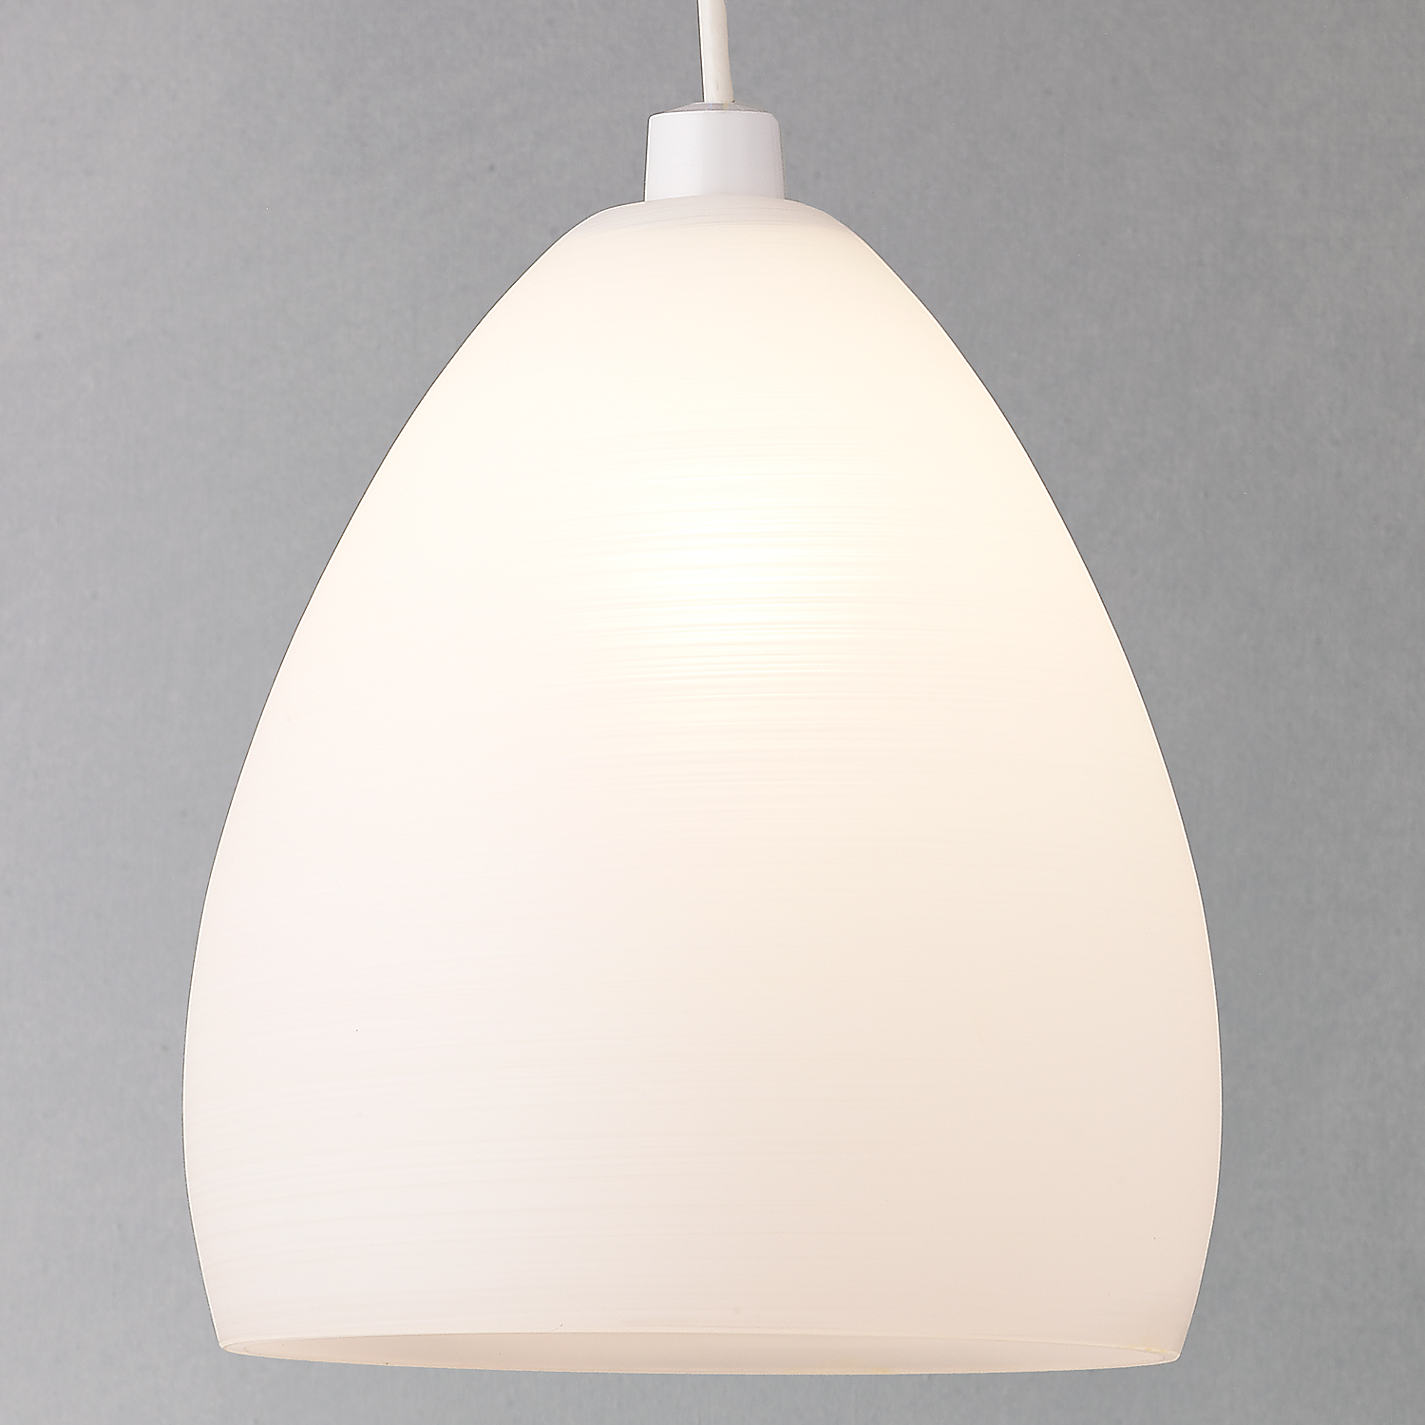 Buy john lewis easy to fit corina ceiling shade john lewis buy john lewis easy to fit corina ceiling shade online at johnlewis mozeypictures Choice Image